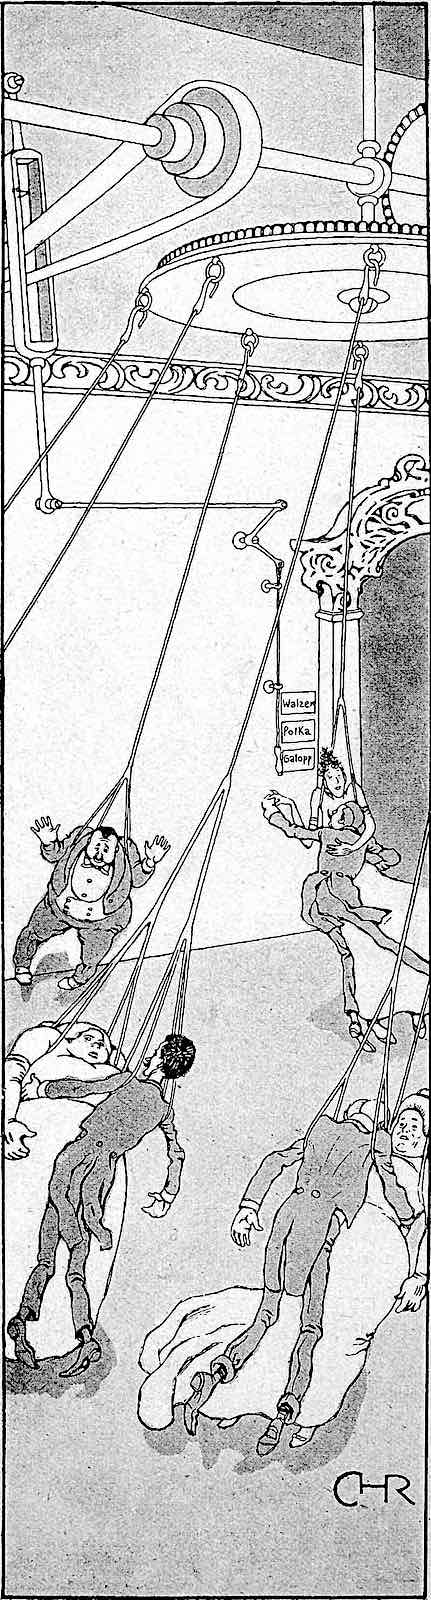 a 1902 German cartoon illustration of tired dancers on cables